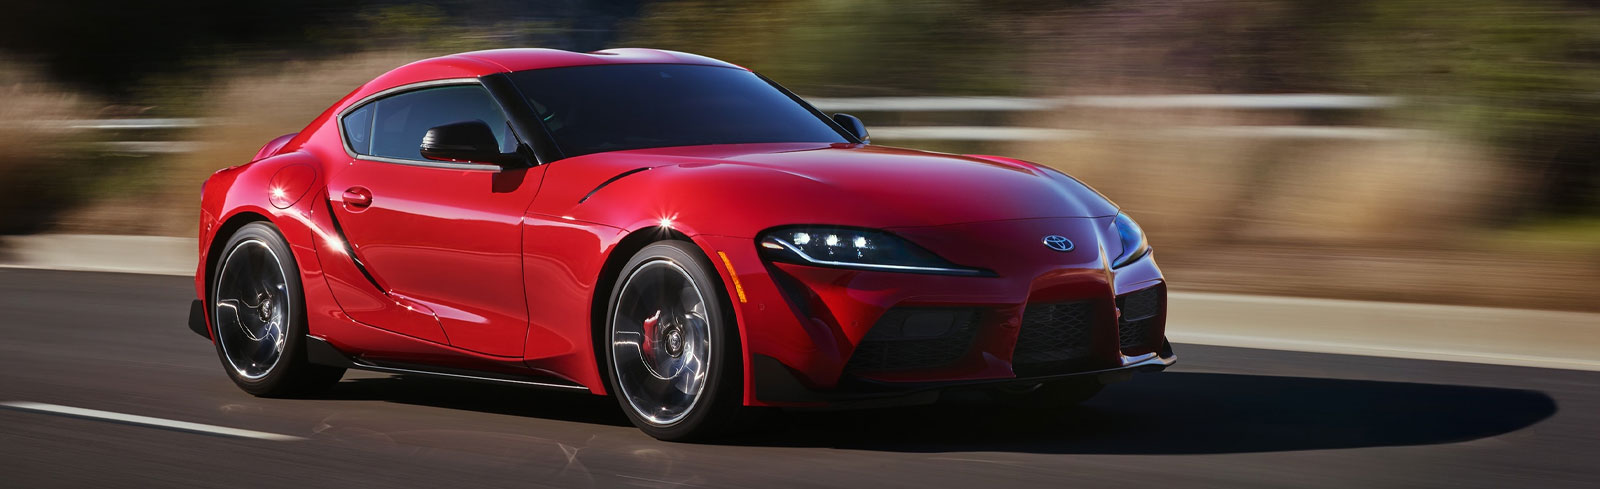 All New 2020 Toyota GR Supra for Sale at Future Toyota of Yuba City